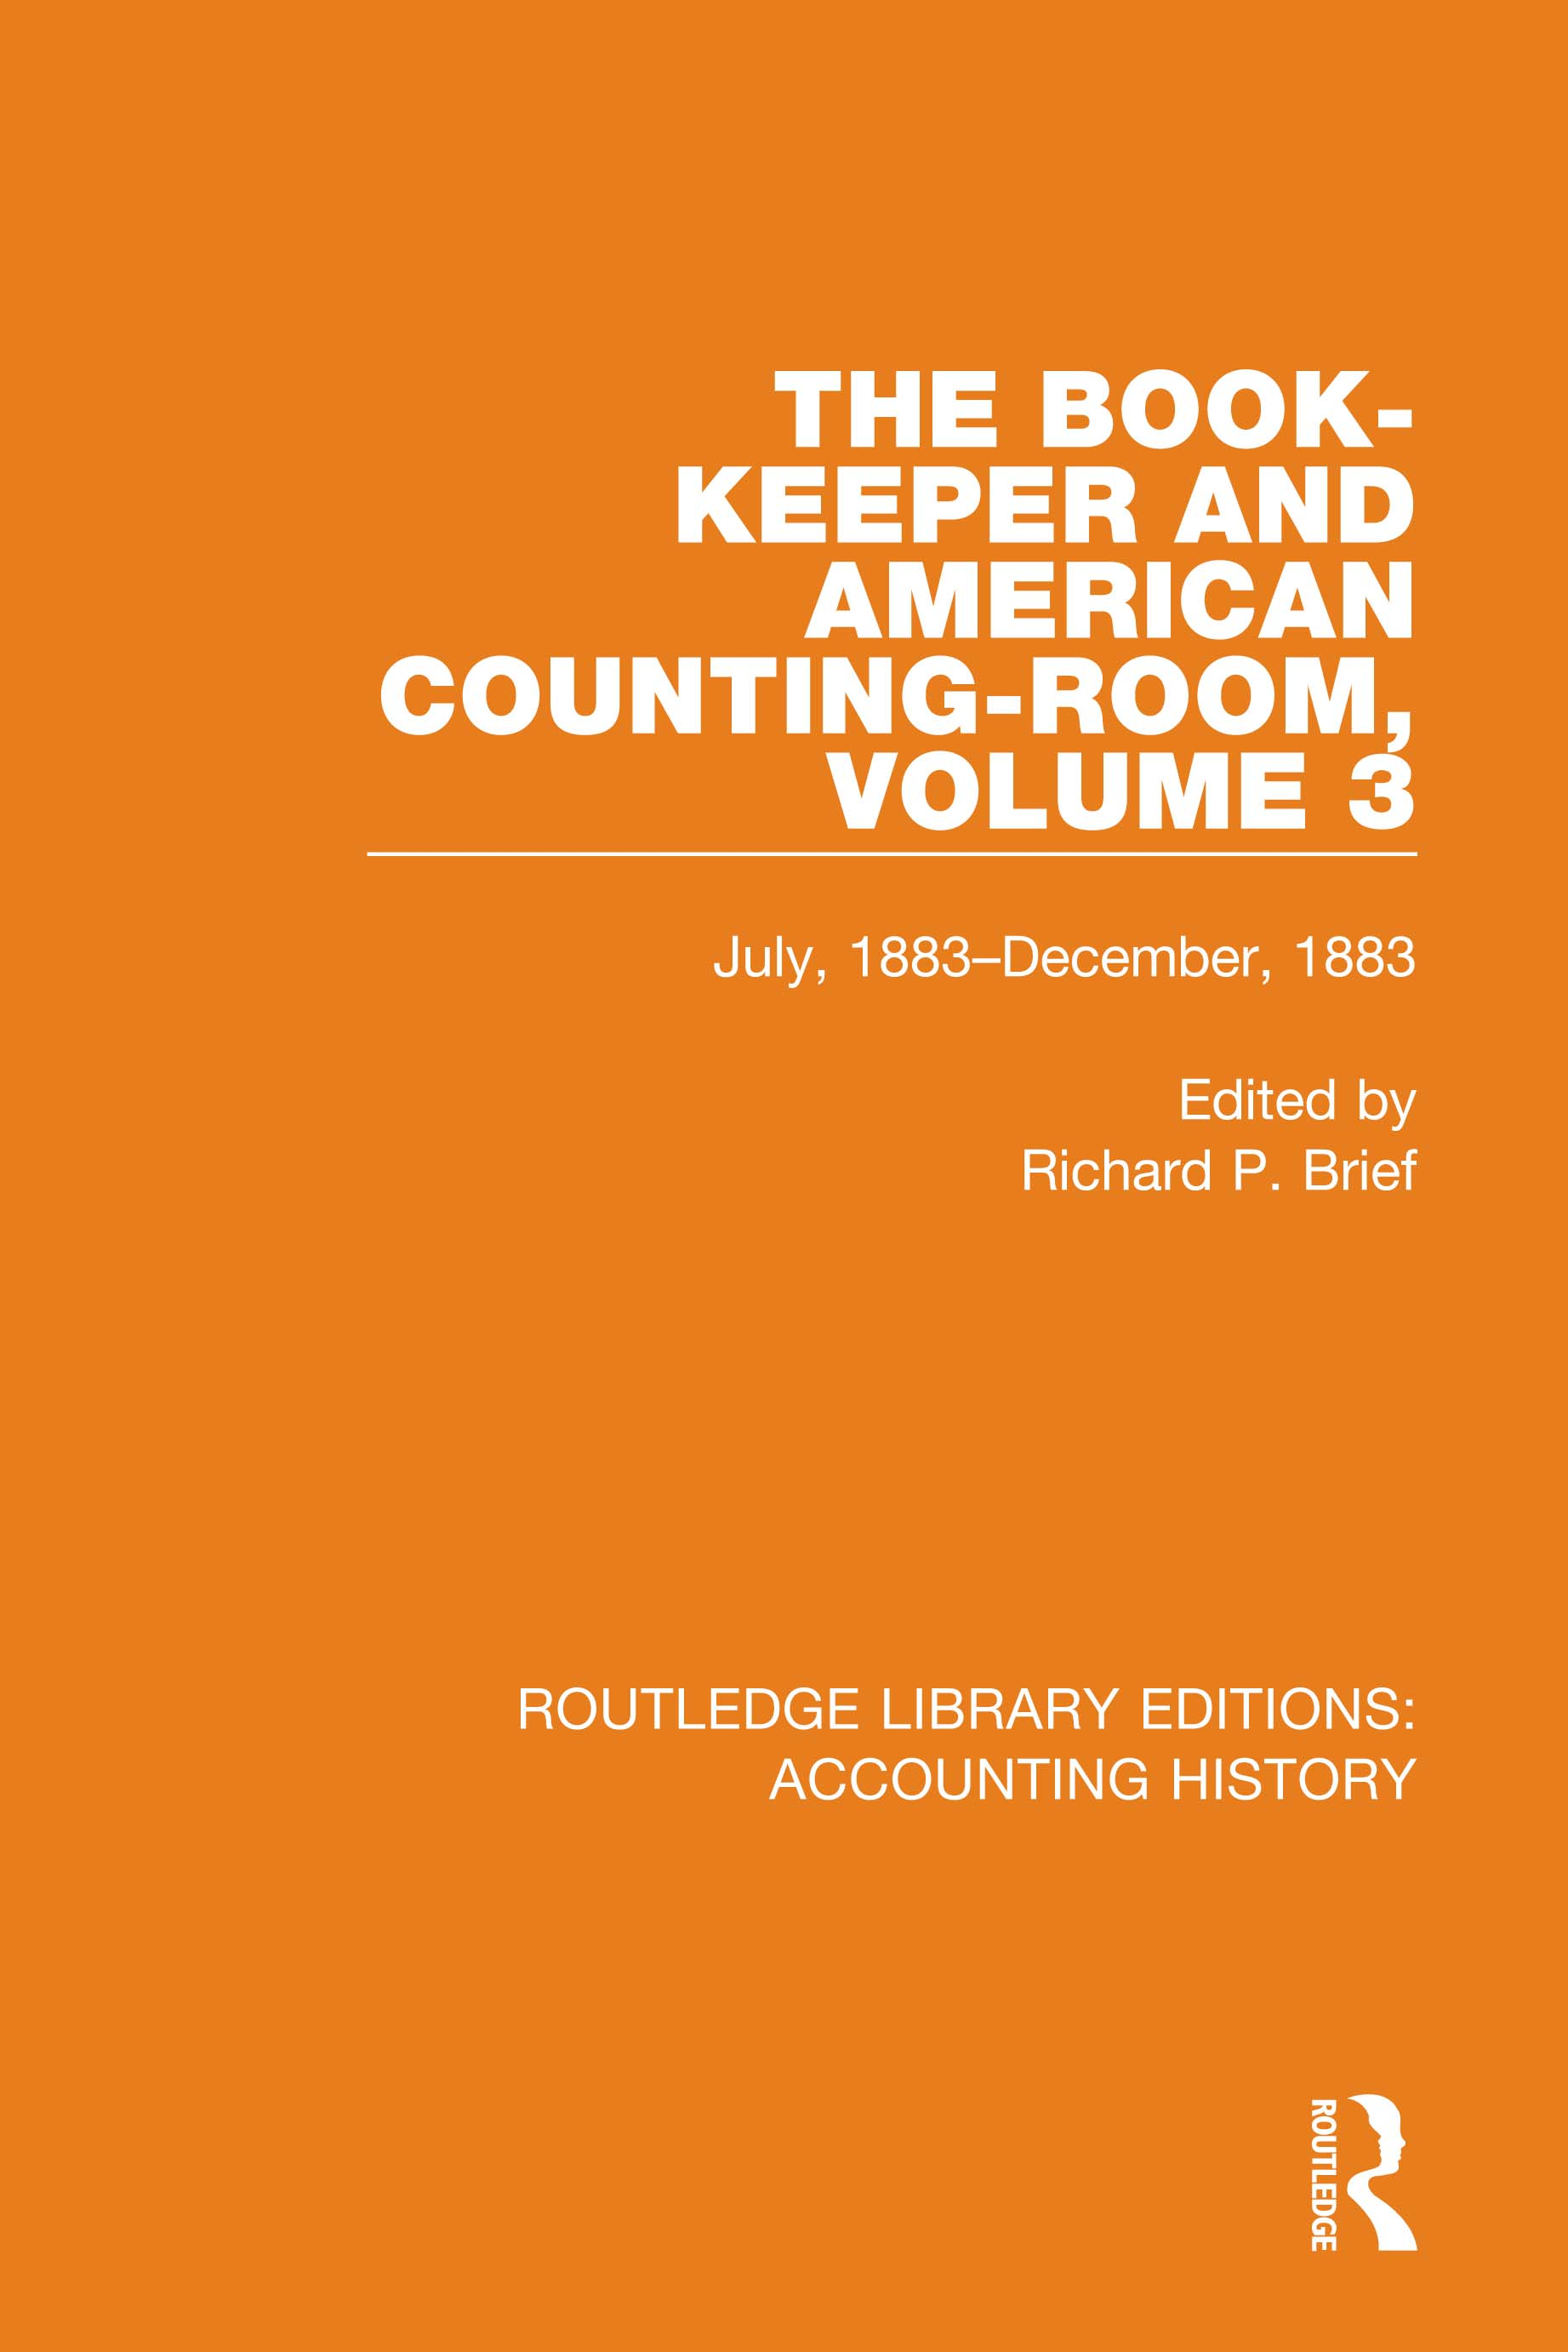 The Book-Keeper and American Counting-Room Volume 3